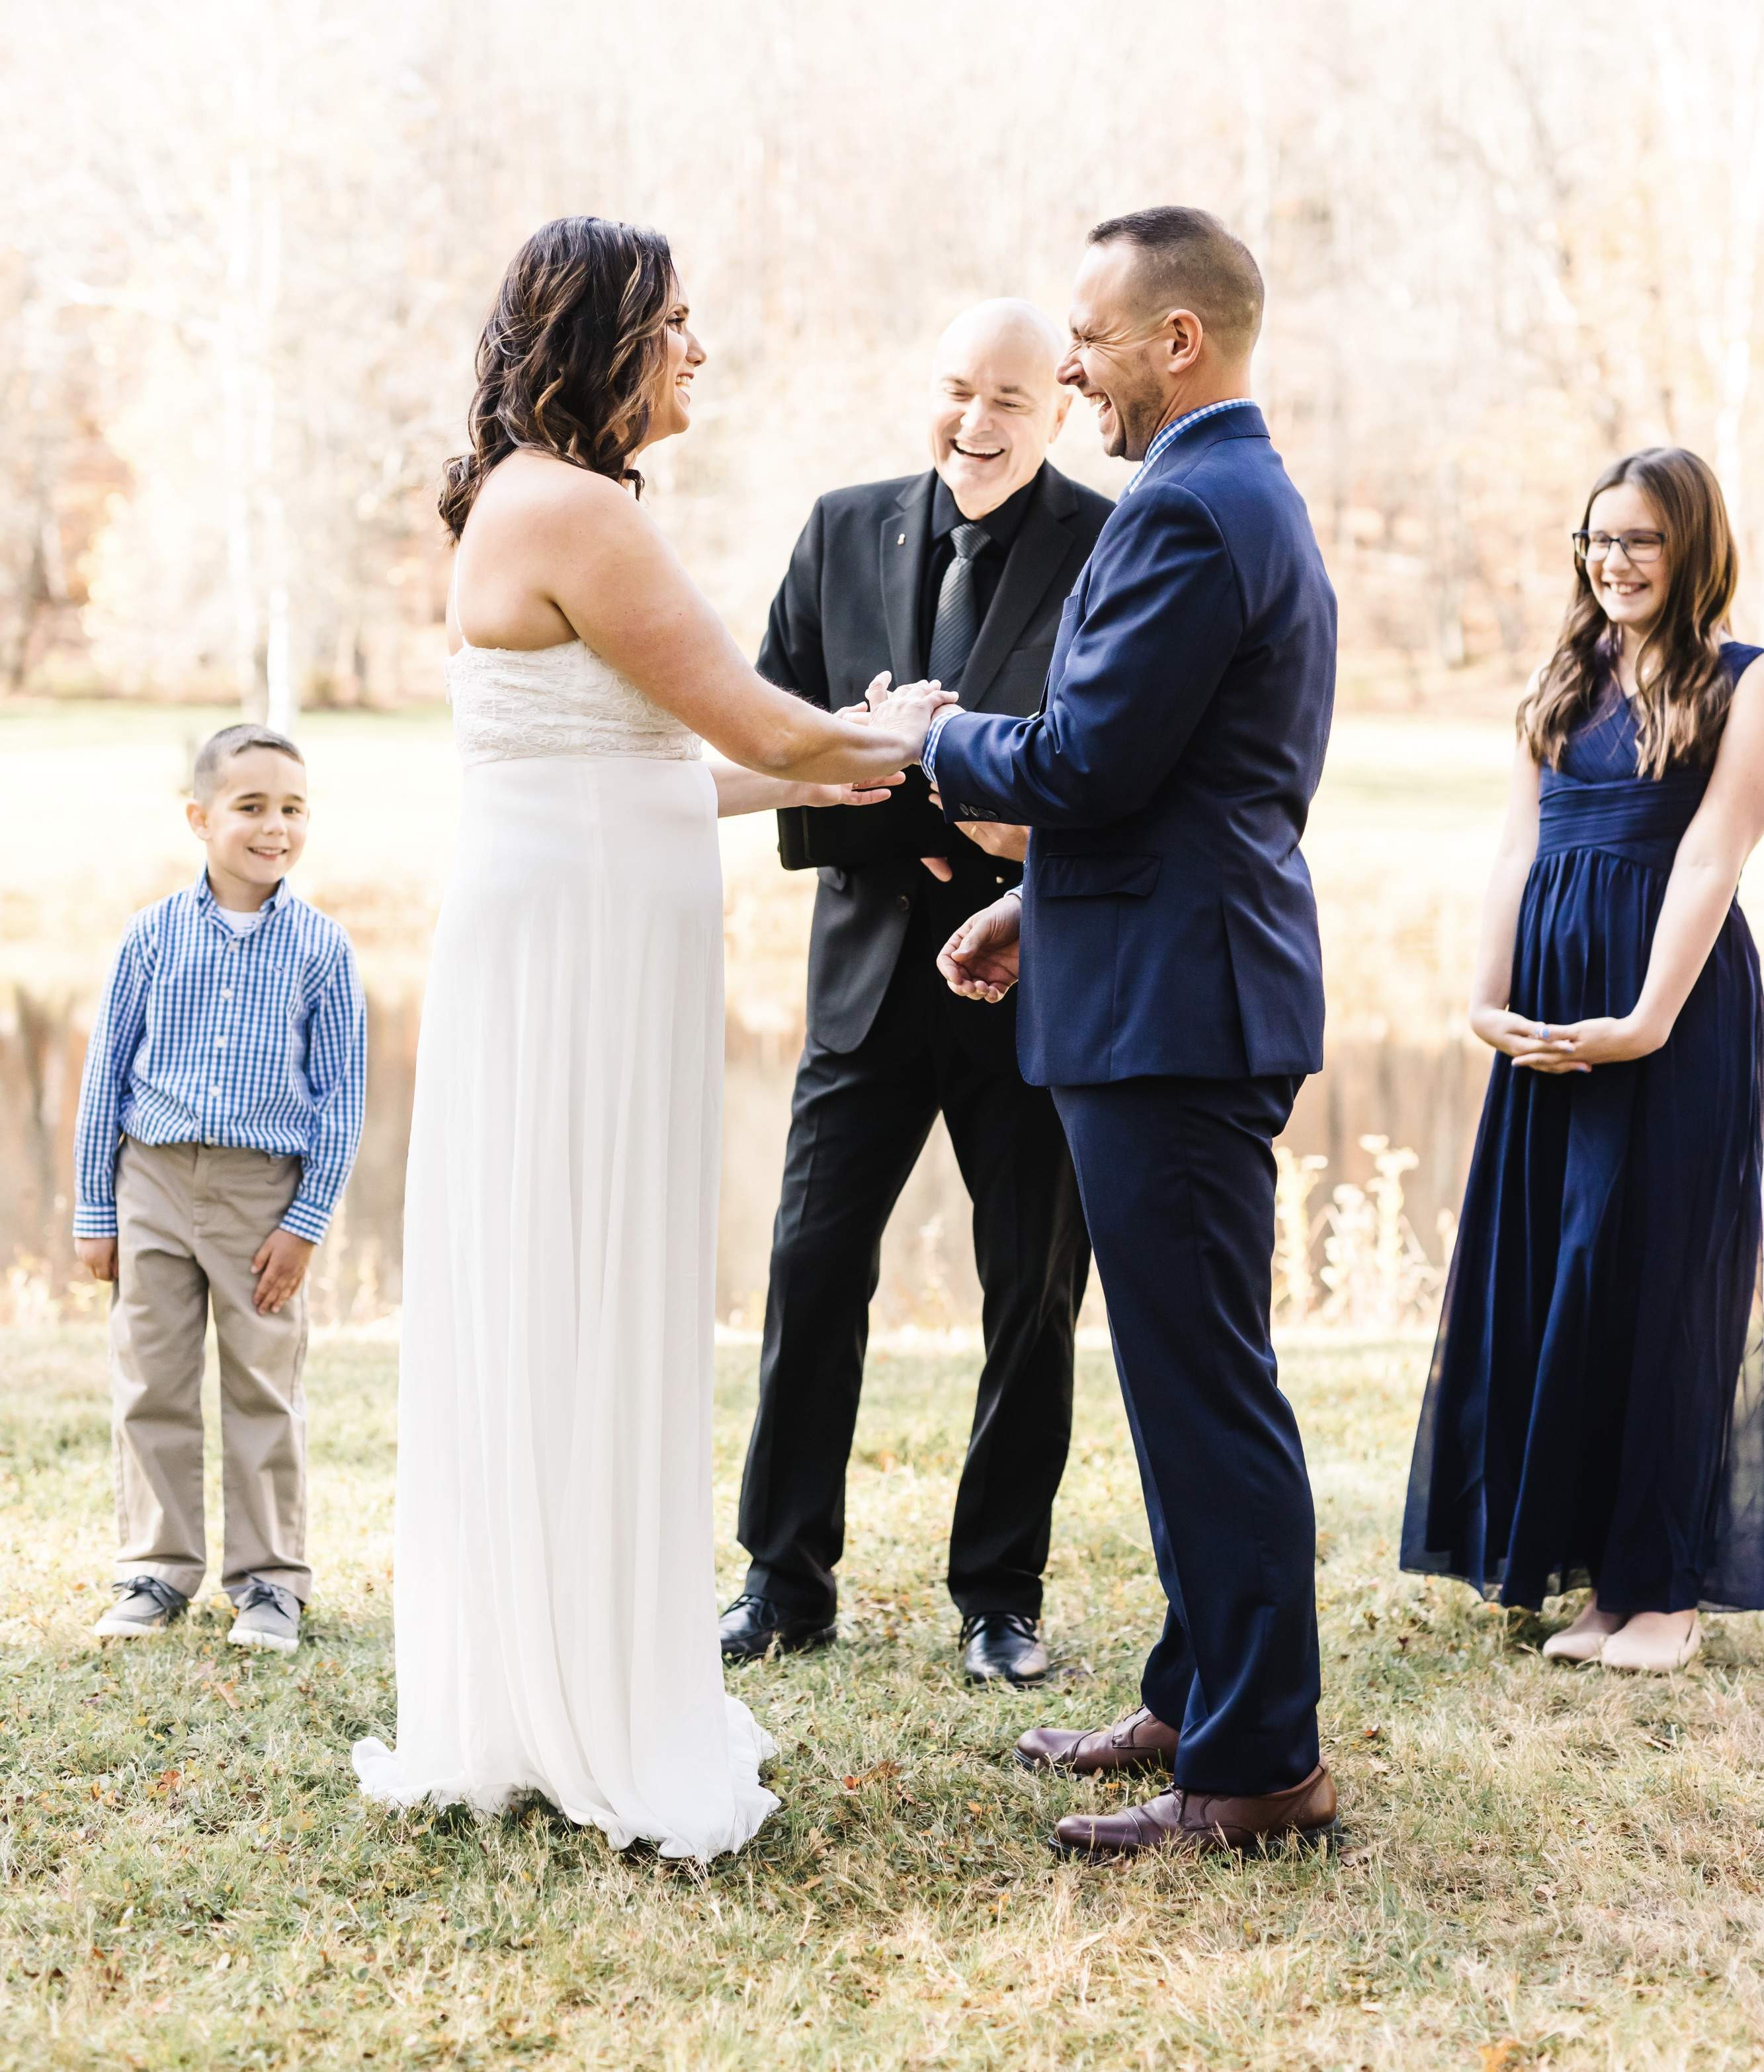 Greg Trulson, Justice of the Peace, Vermont Wedding Officiant, Elopements, Moose Meadow Lodge, Ellen Sargent Photography